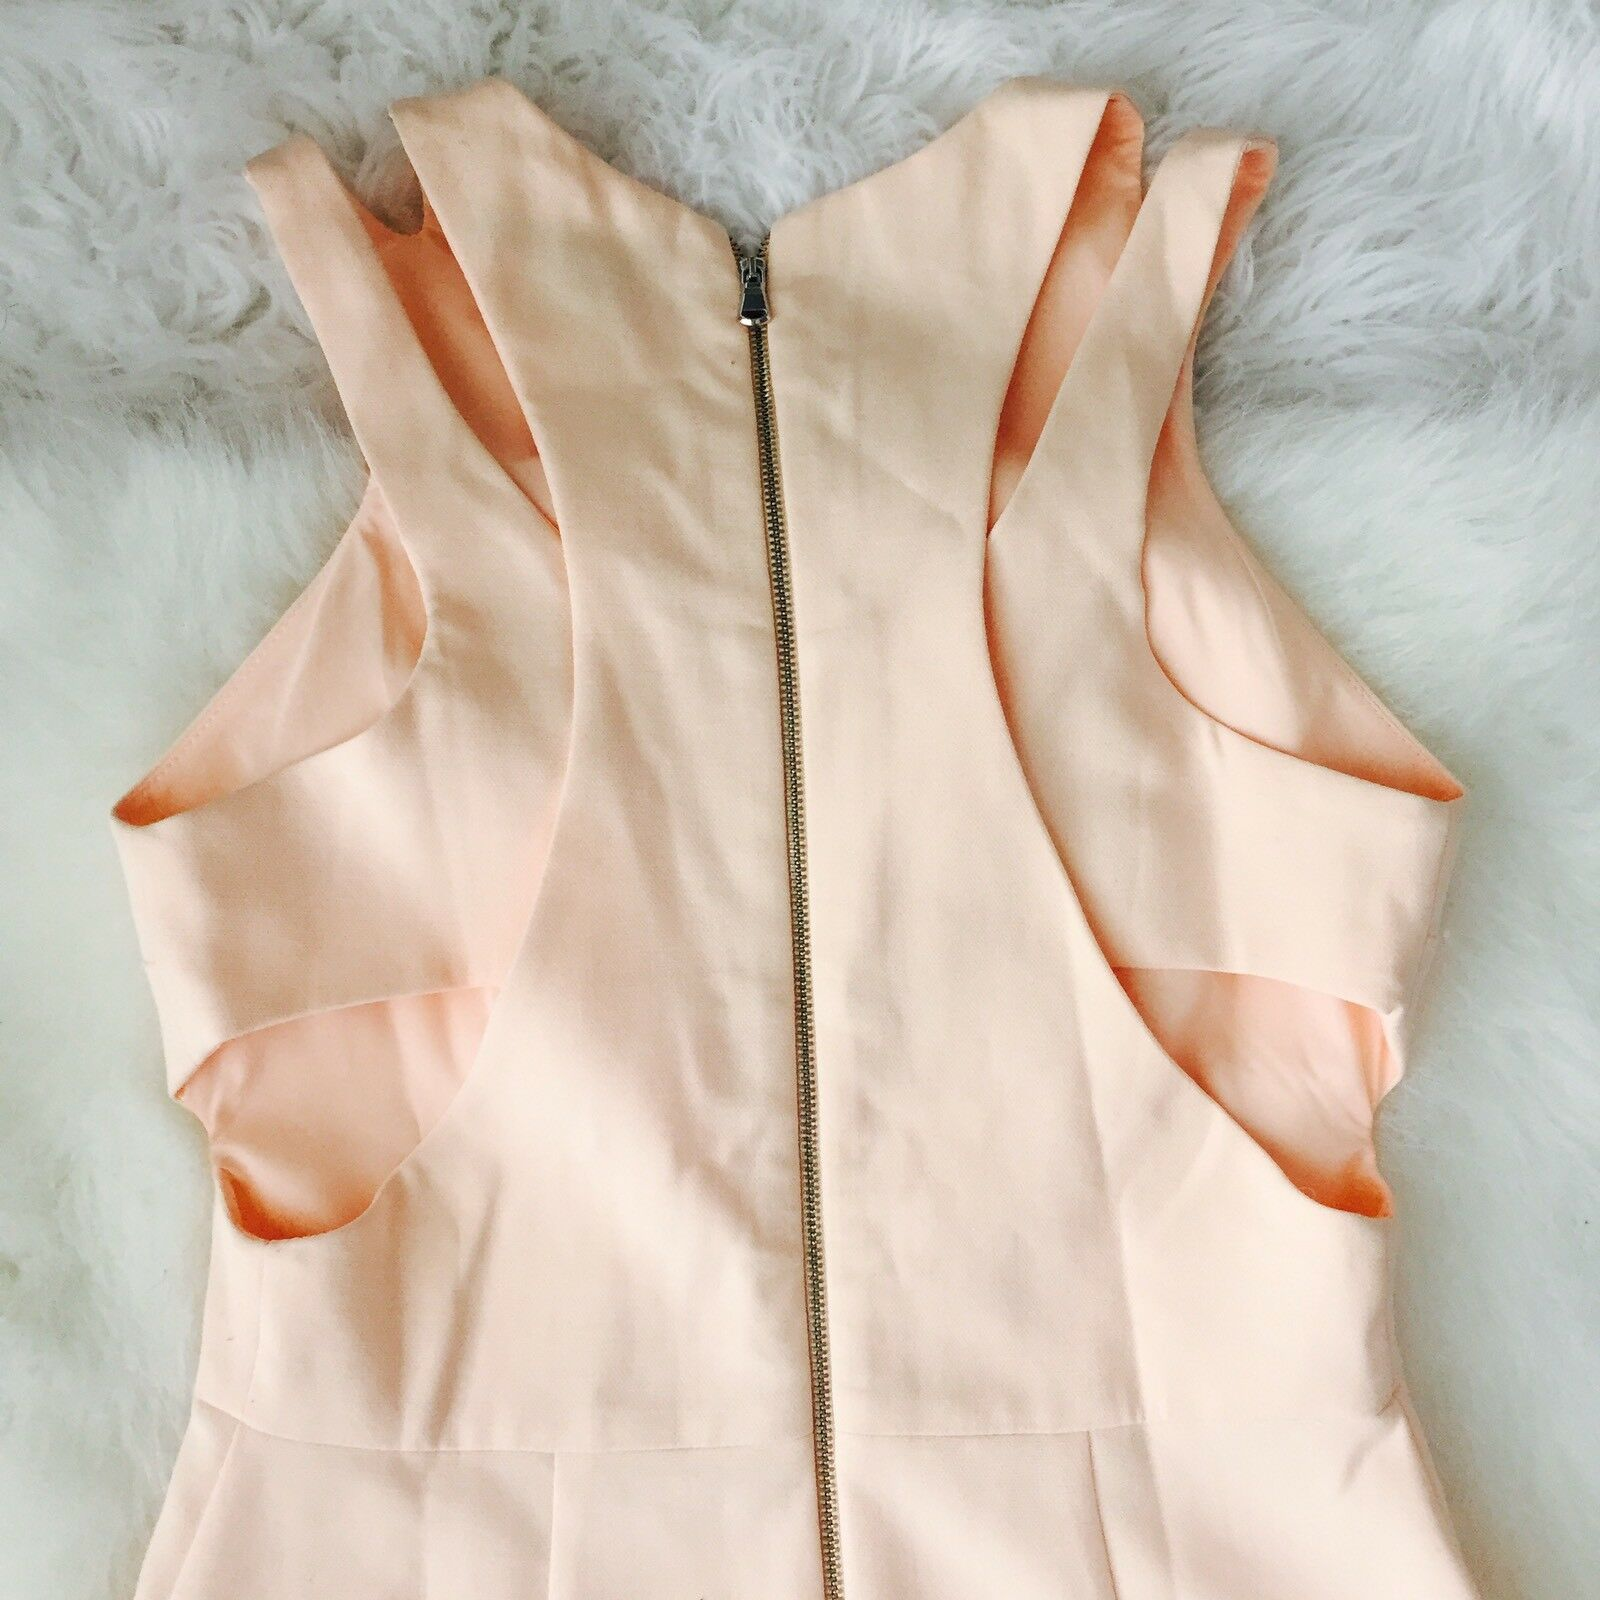 FRENCH CONNECTION Whisper Whisper Whisper Light Cut Out Peach Apricot Dress Sz 6 3c3059